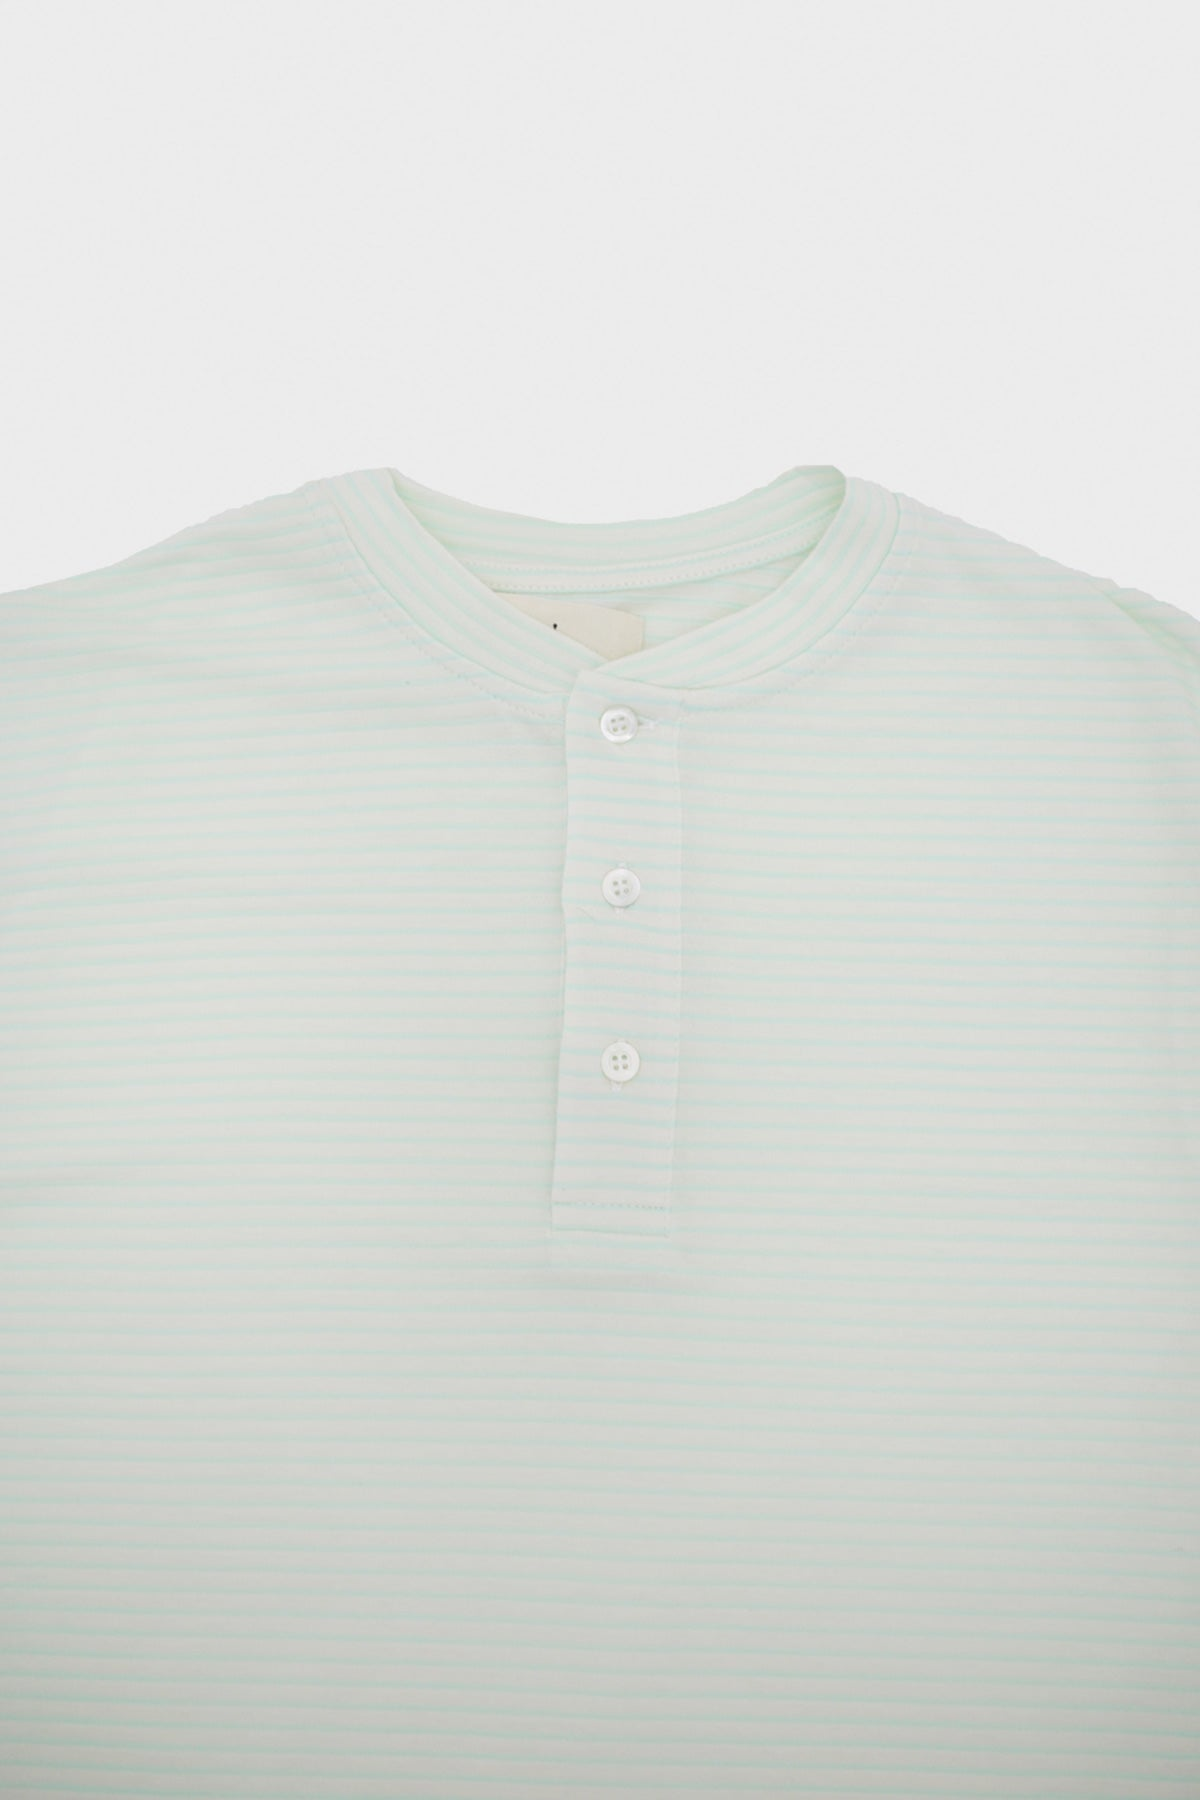 La Paz - RIBAS Henley - Aqua Green Stripes - Canoe Club